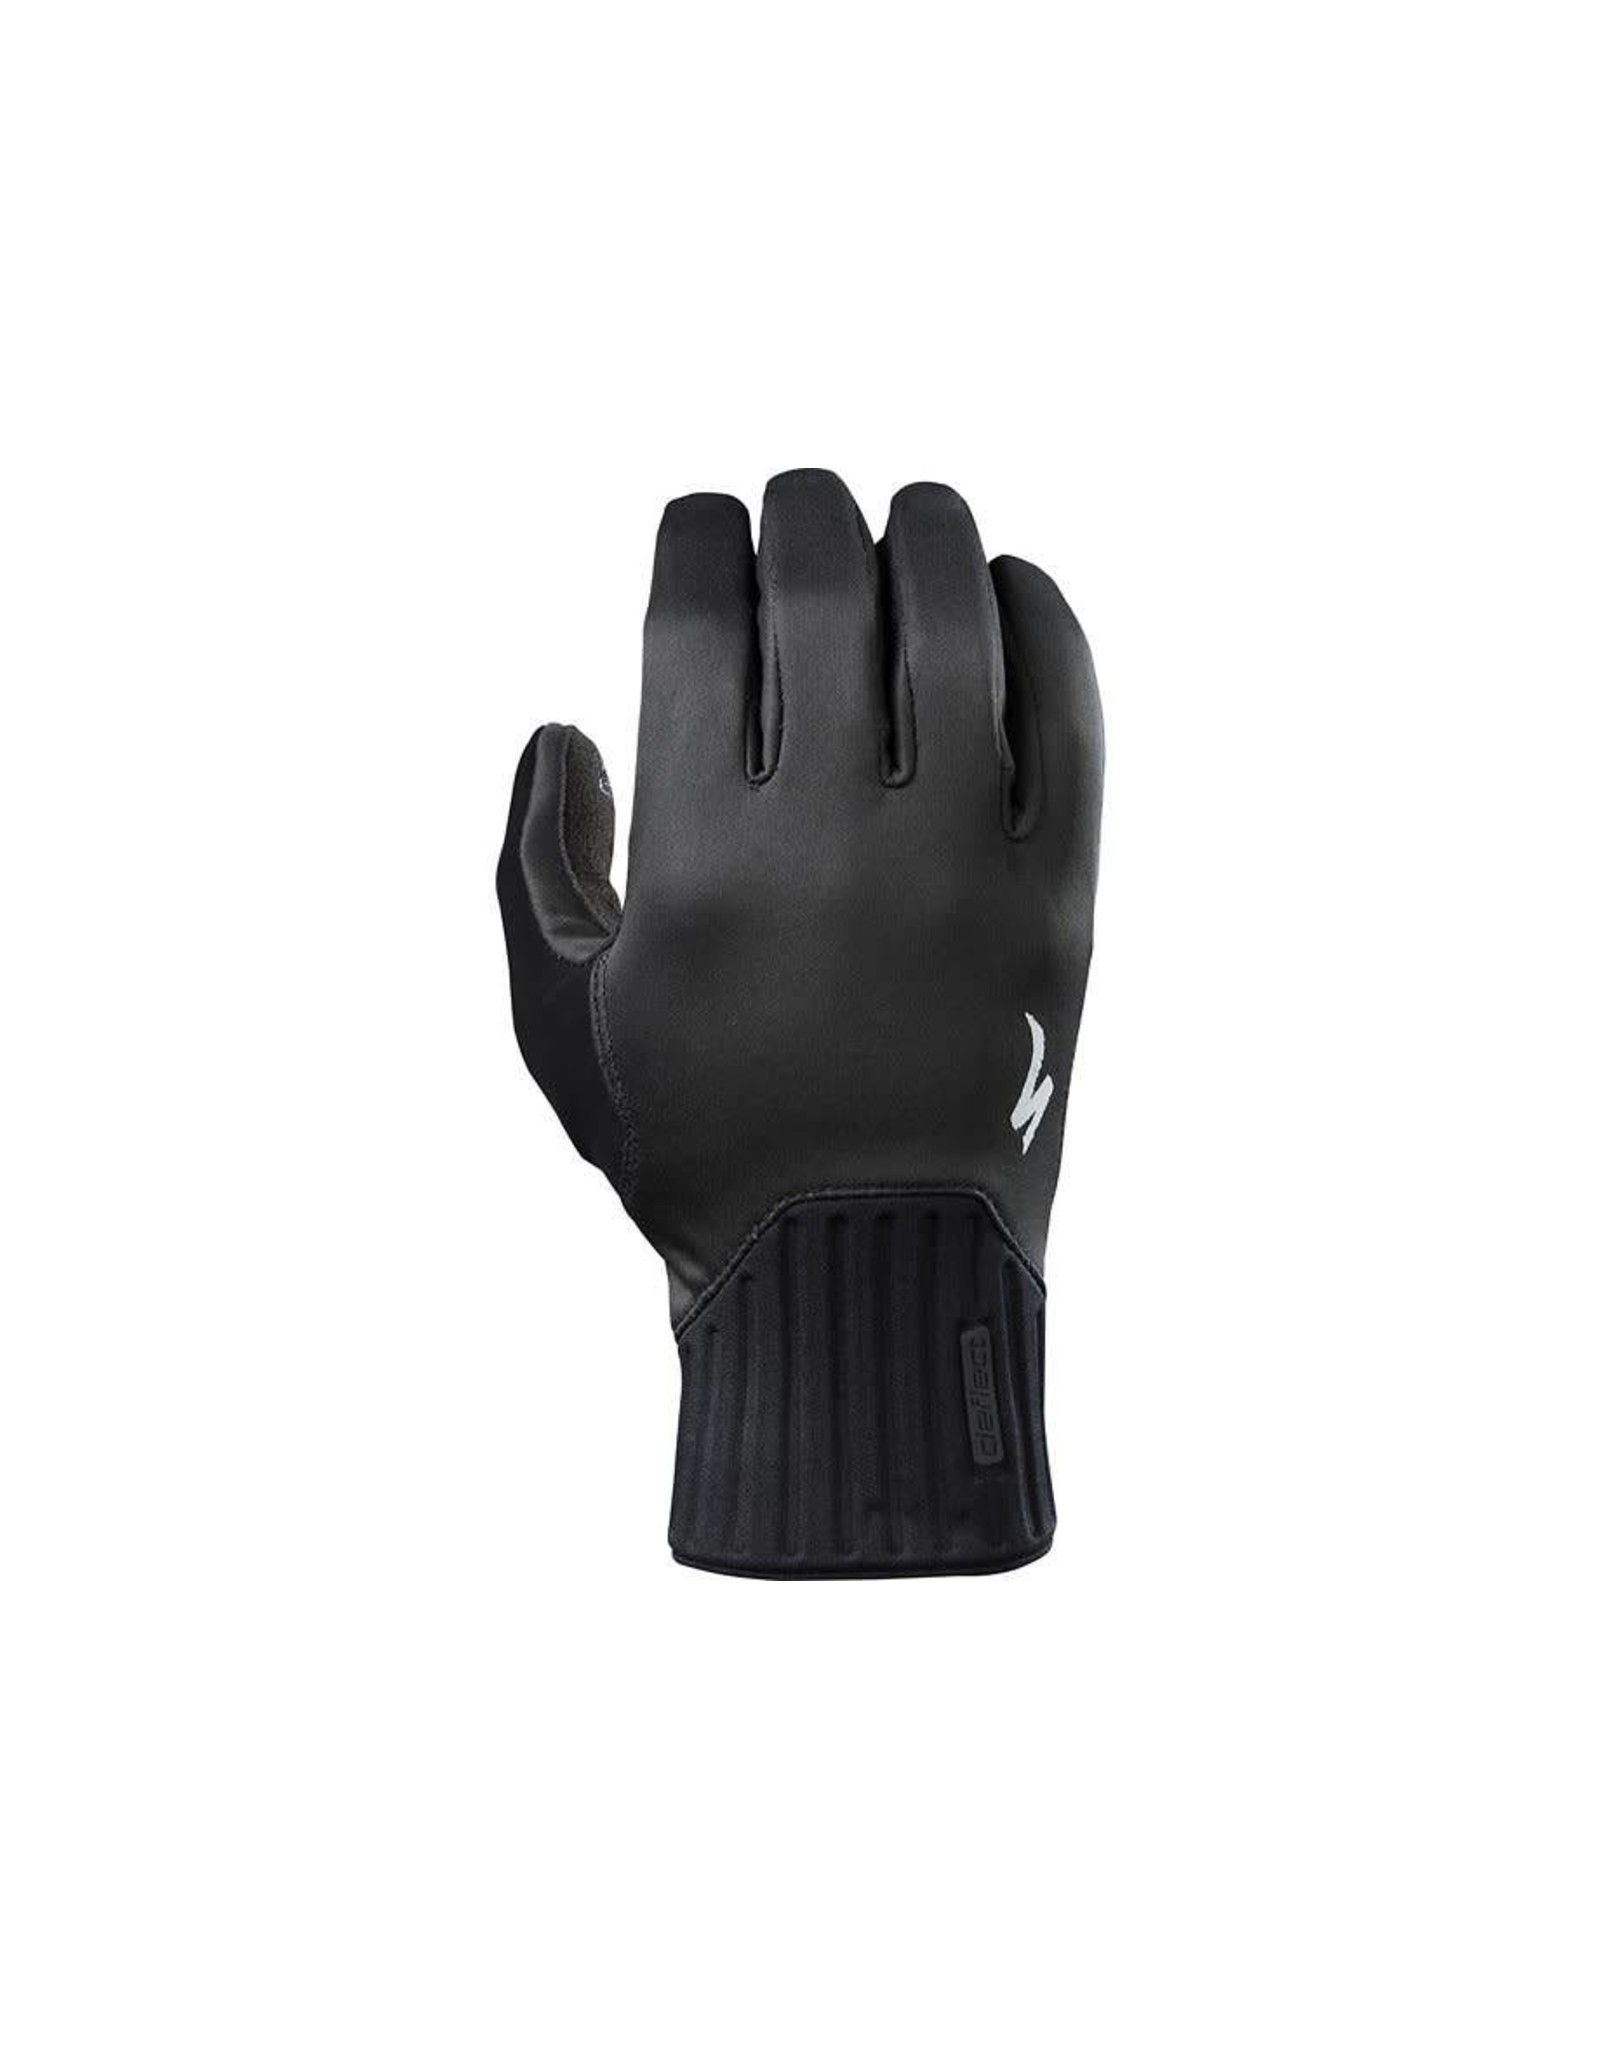 SPECIALIZED Specialized Deflect Glove - Black - Large